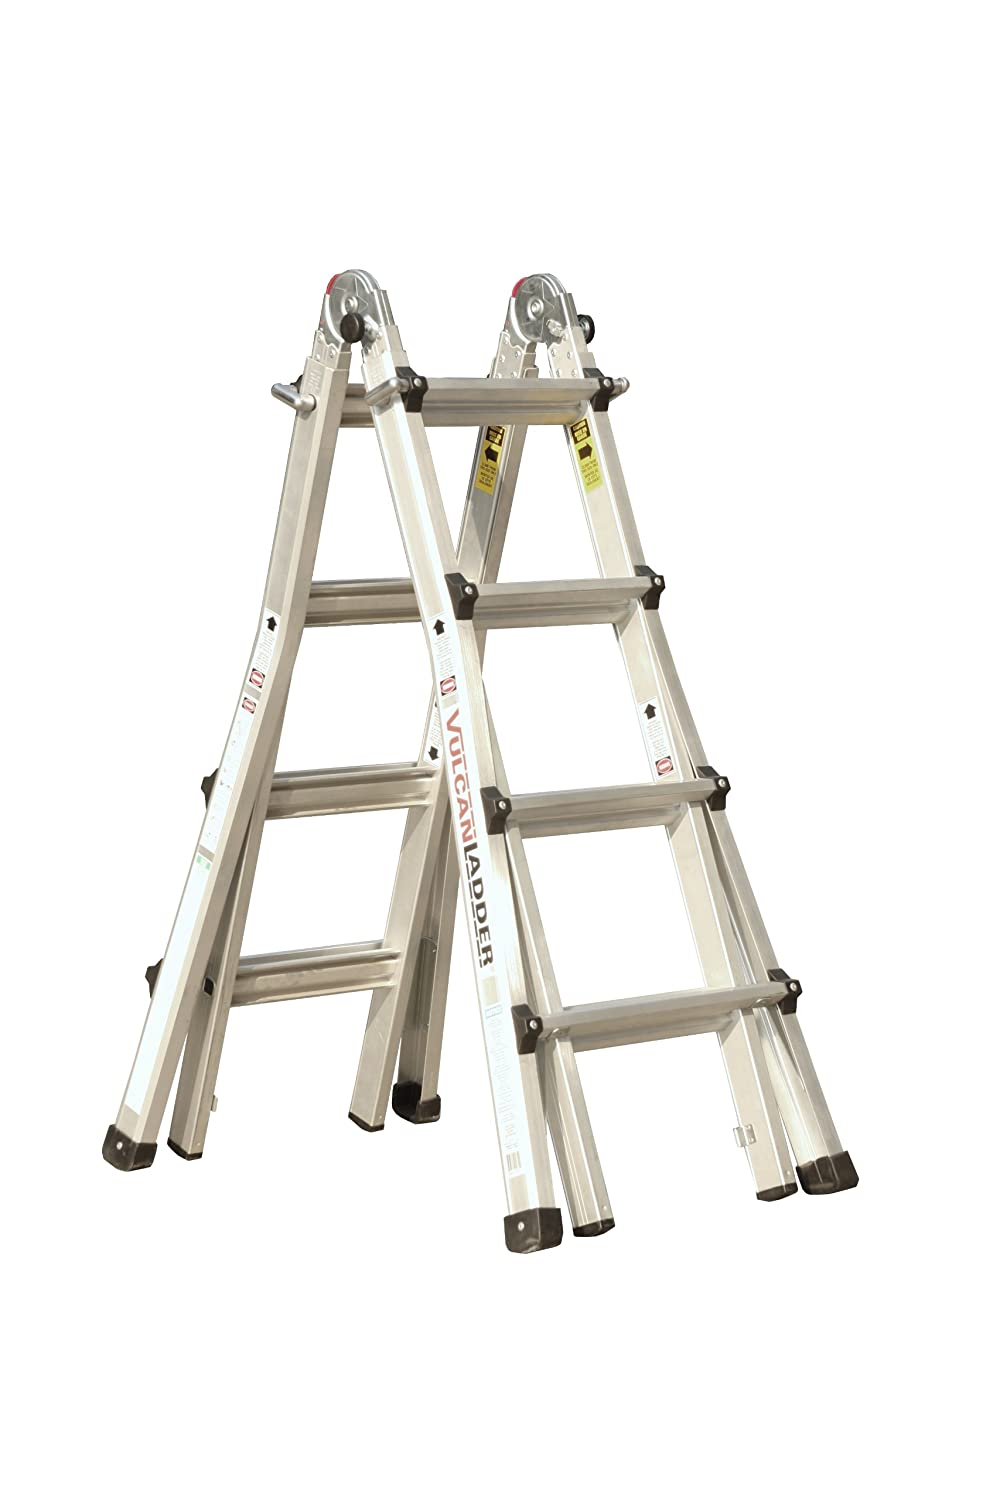 Vulcan Ladder Usa Es 17t11g1 Multi Task Ladder